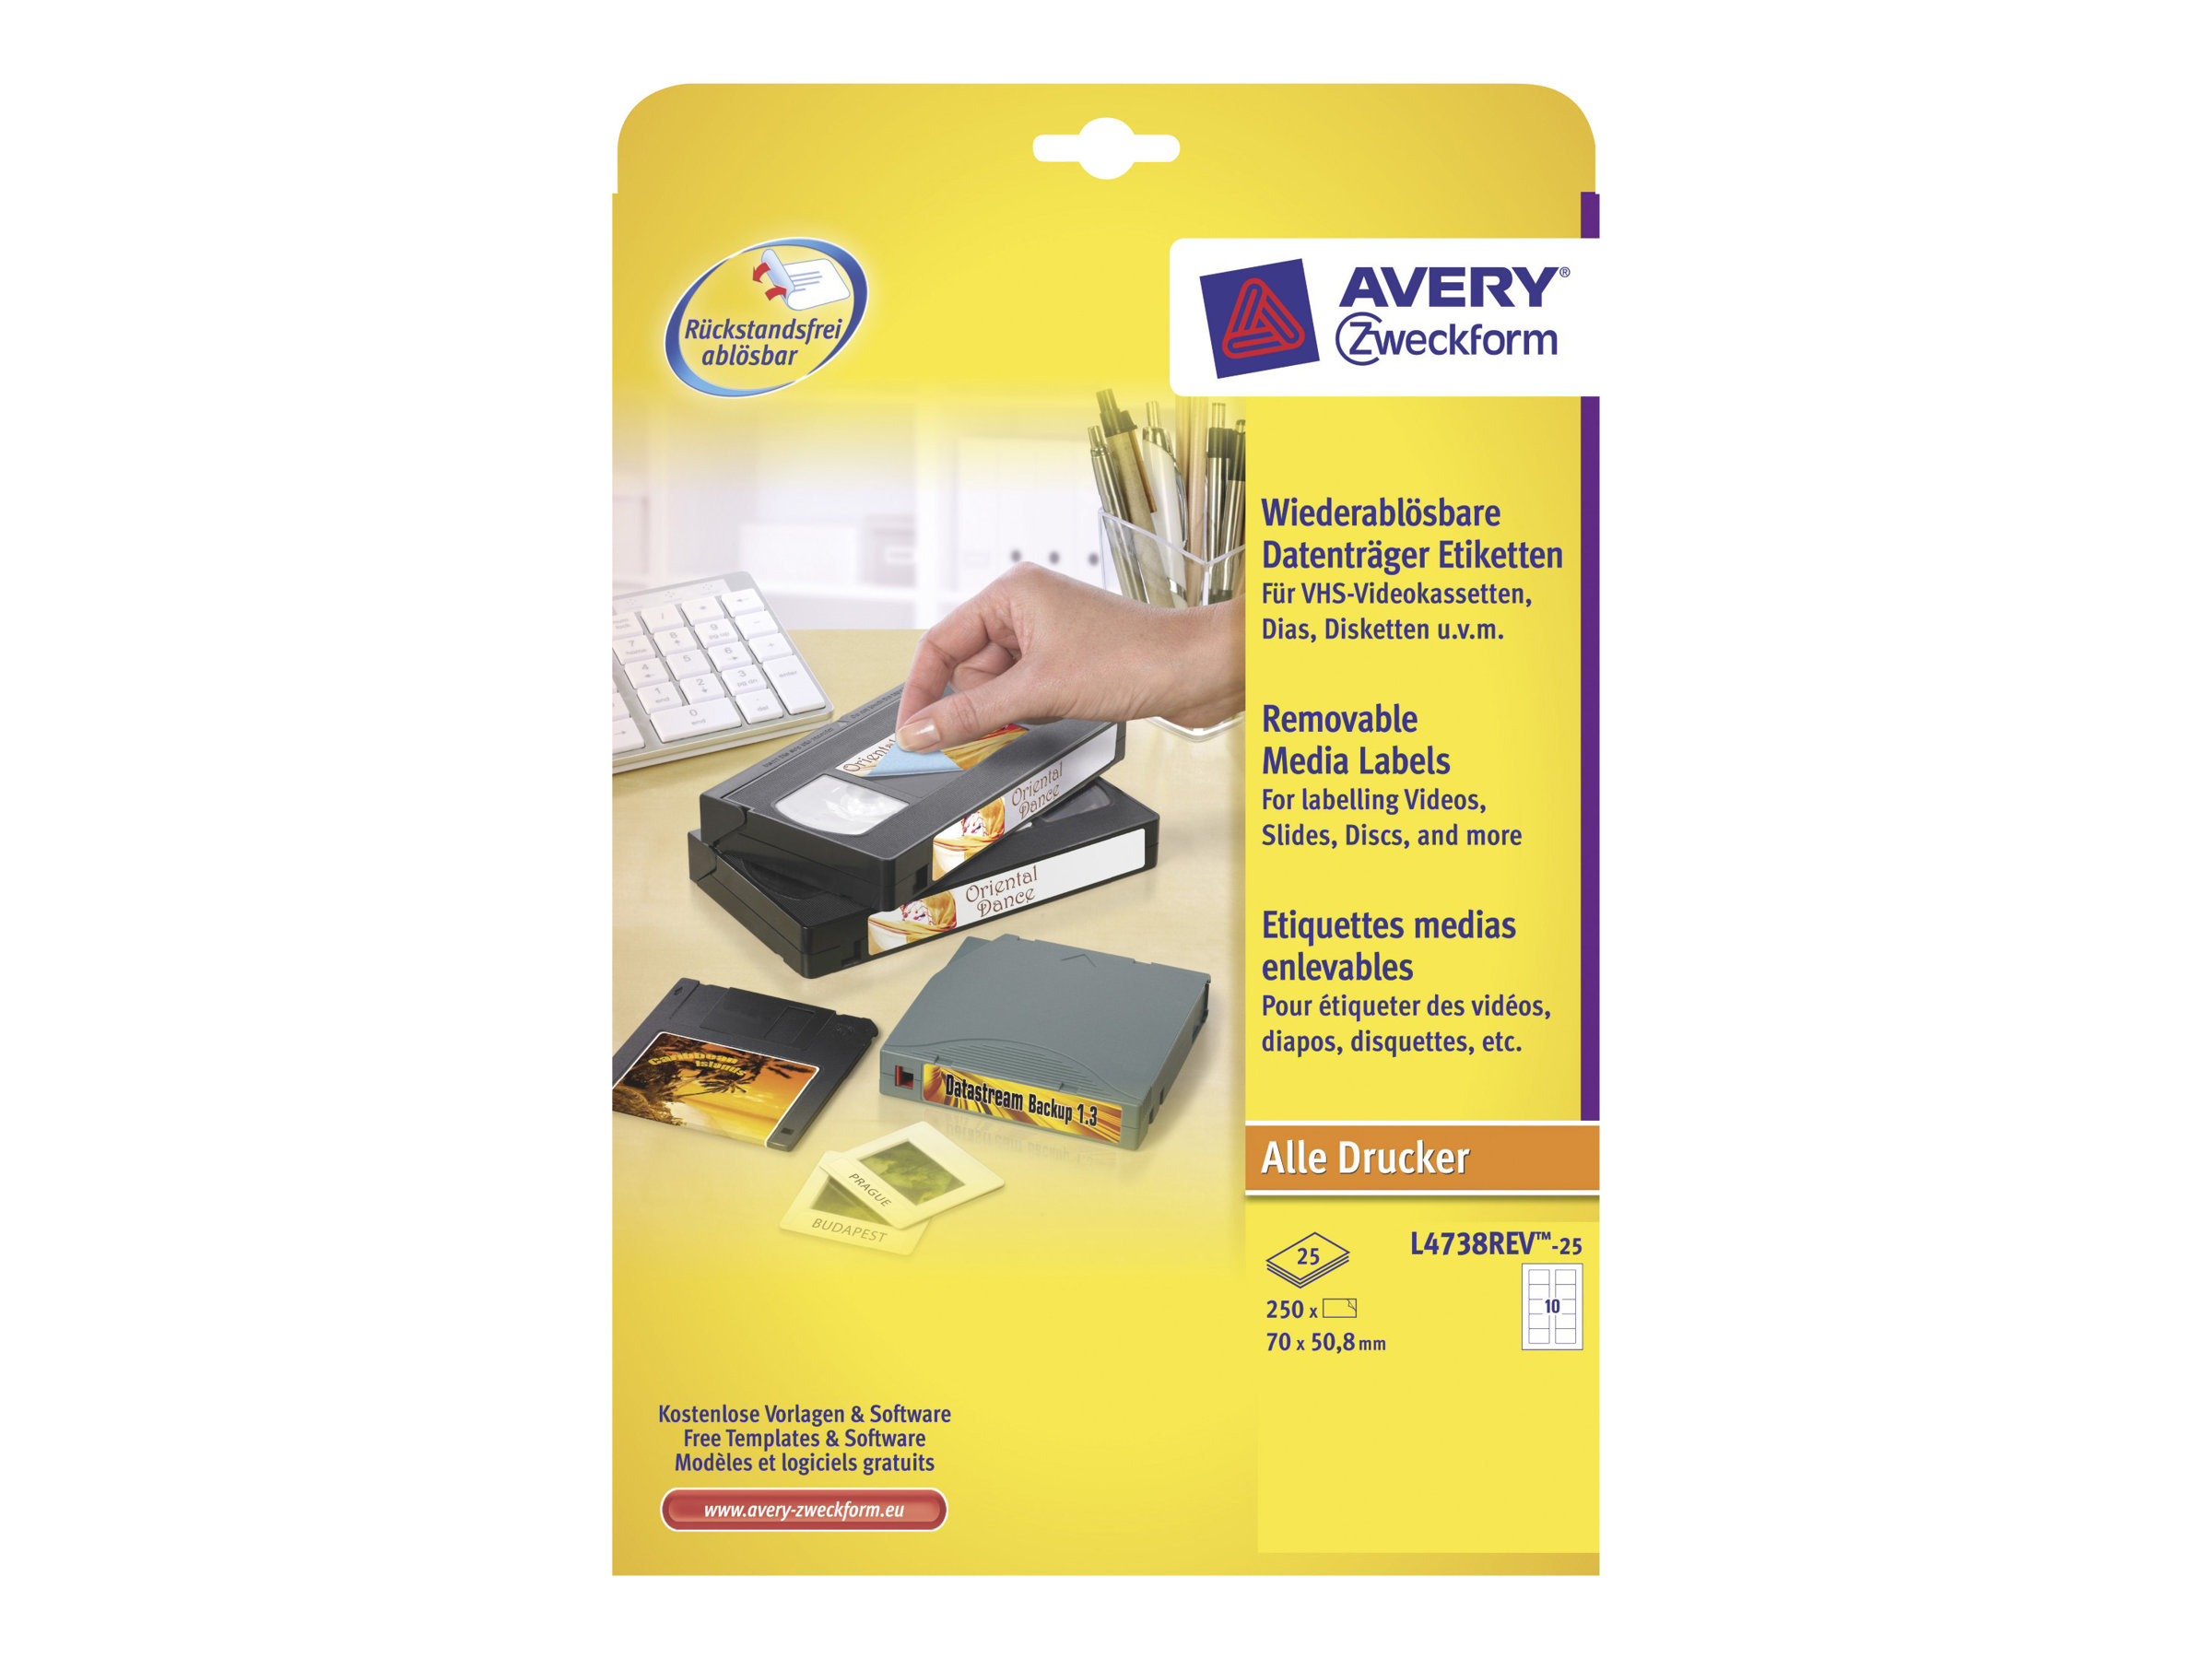 Avery Zweckform Diskette Labels - Weiß - 70 x 50.8 mm 250 Etikett(en) (25 Bogen x 10) Diskettenetiketten